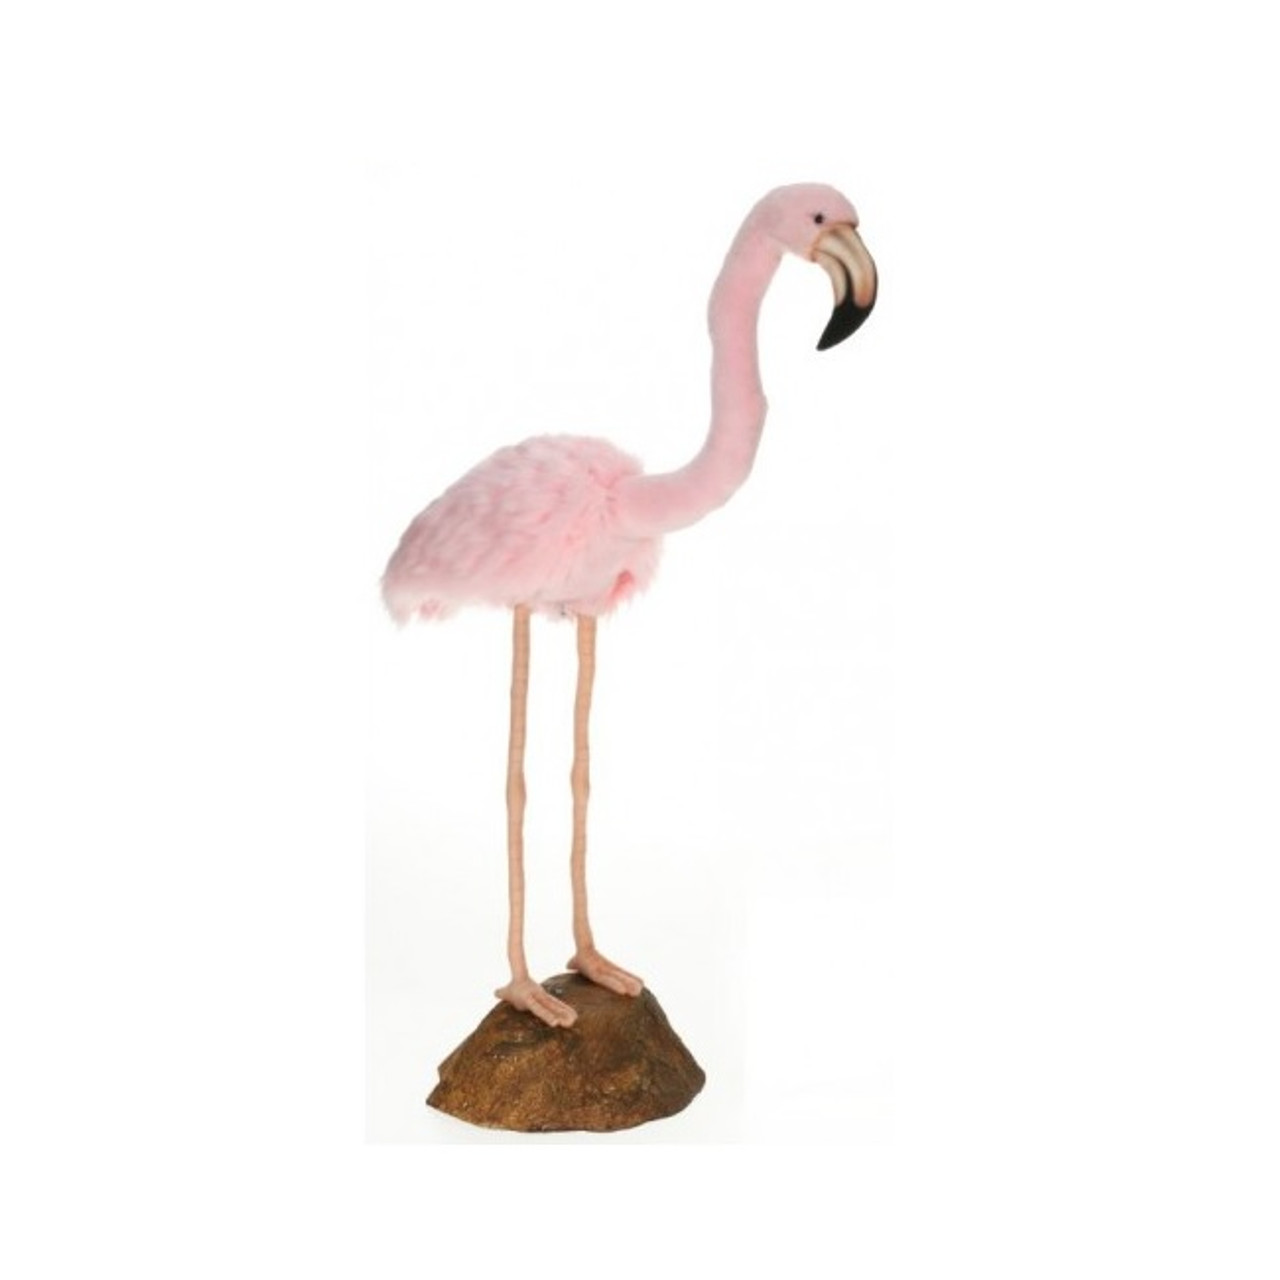 31 5 Handcrafted Life Size Plush Pink Flamingo Plush Animal With